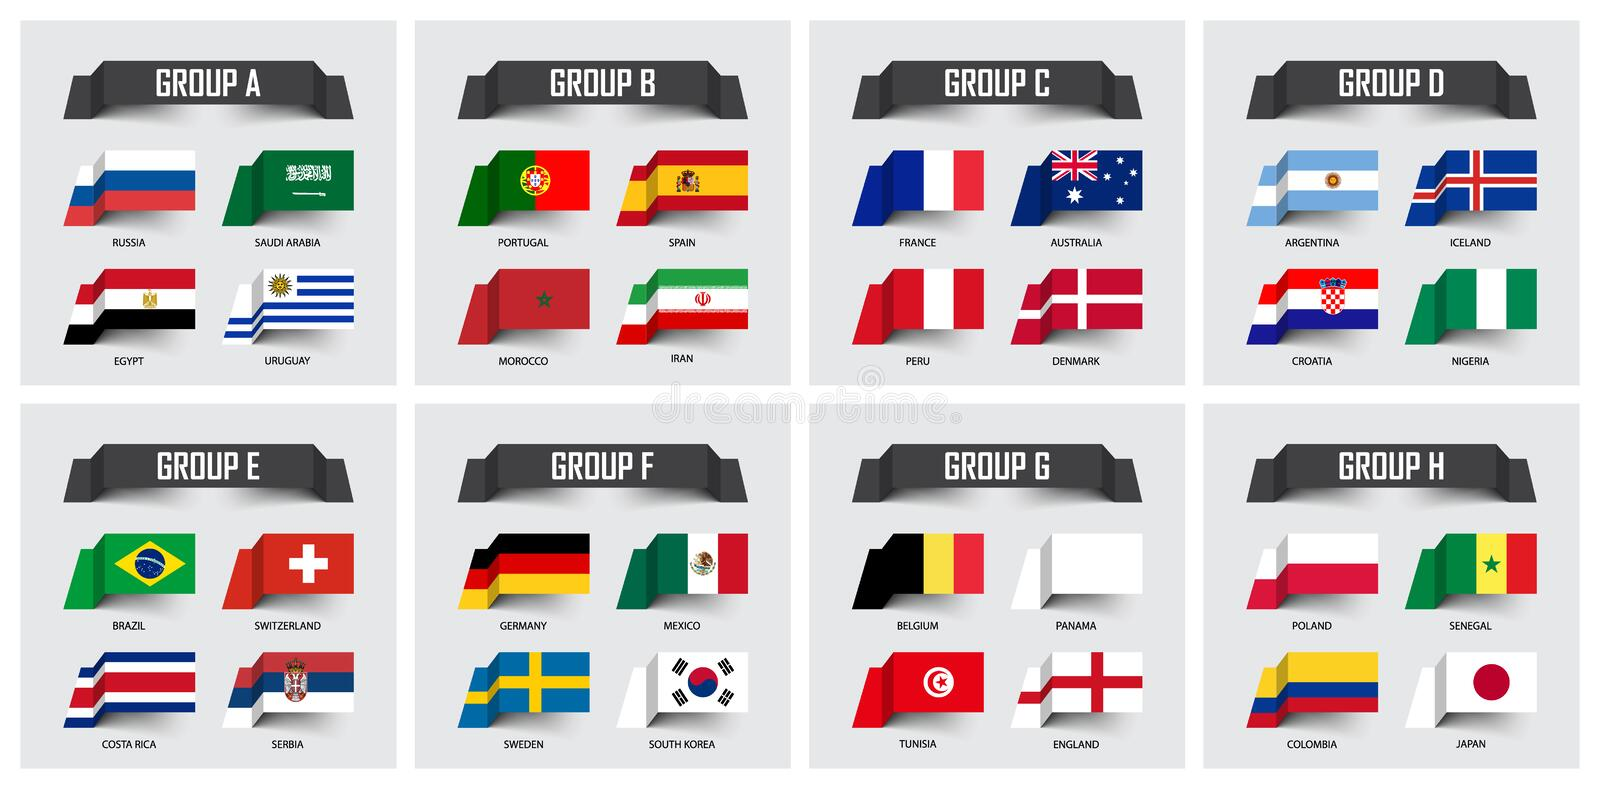 Soccer cup 2018 . Set of national flags team group A - H . Sticky note design . Vector for international world championship tourna royalty free illustration